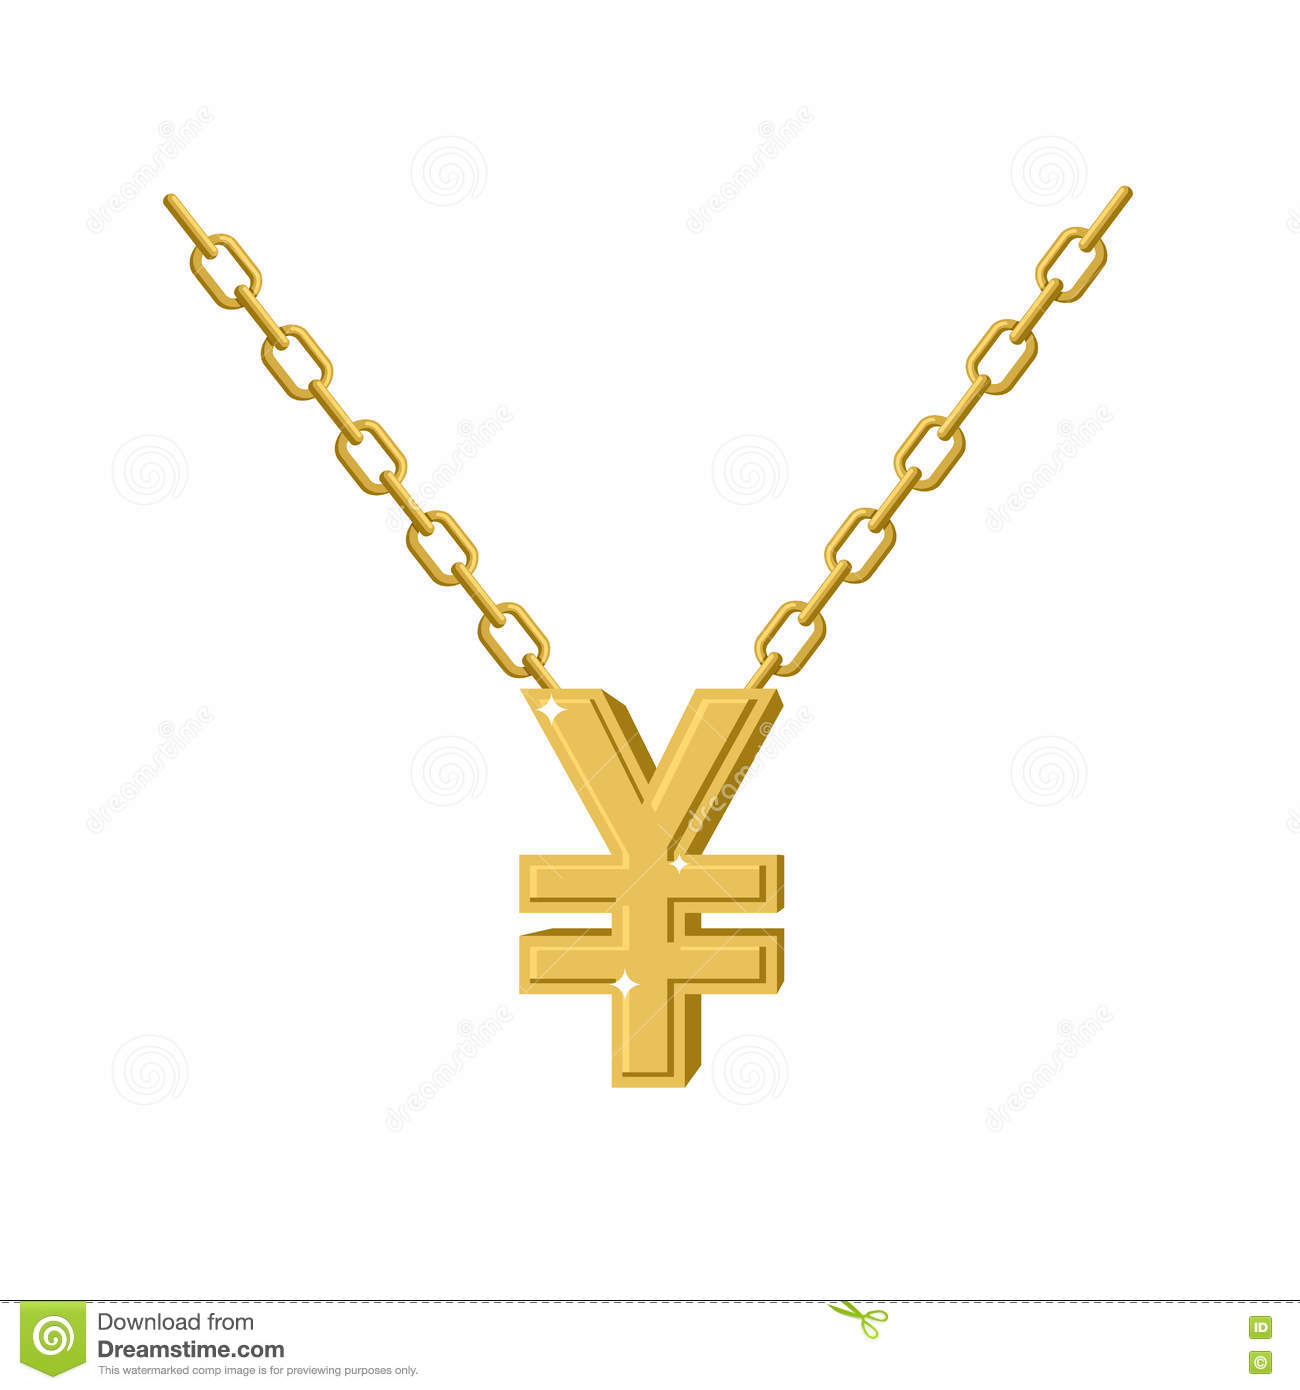 Gold Yen Necklace Decoration Chain Expensive Jewelry Symbol Of